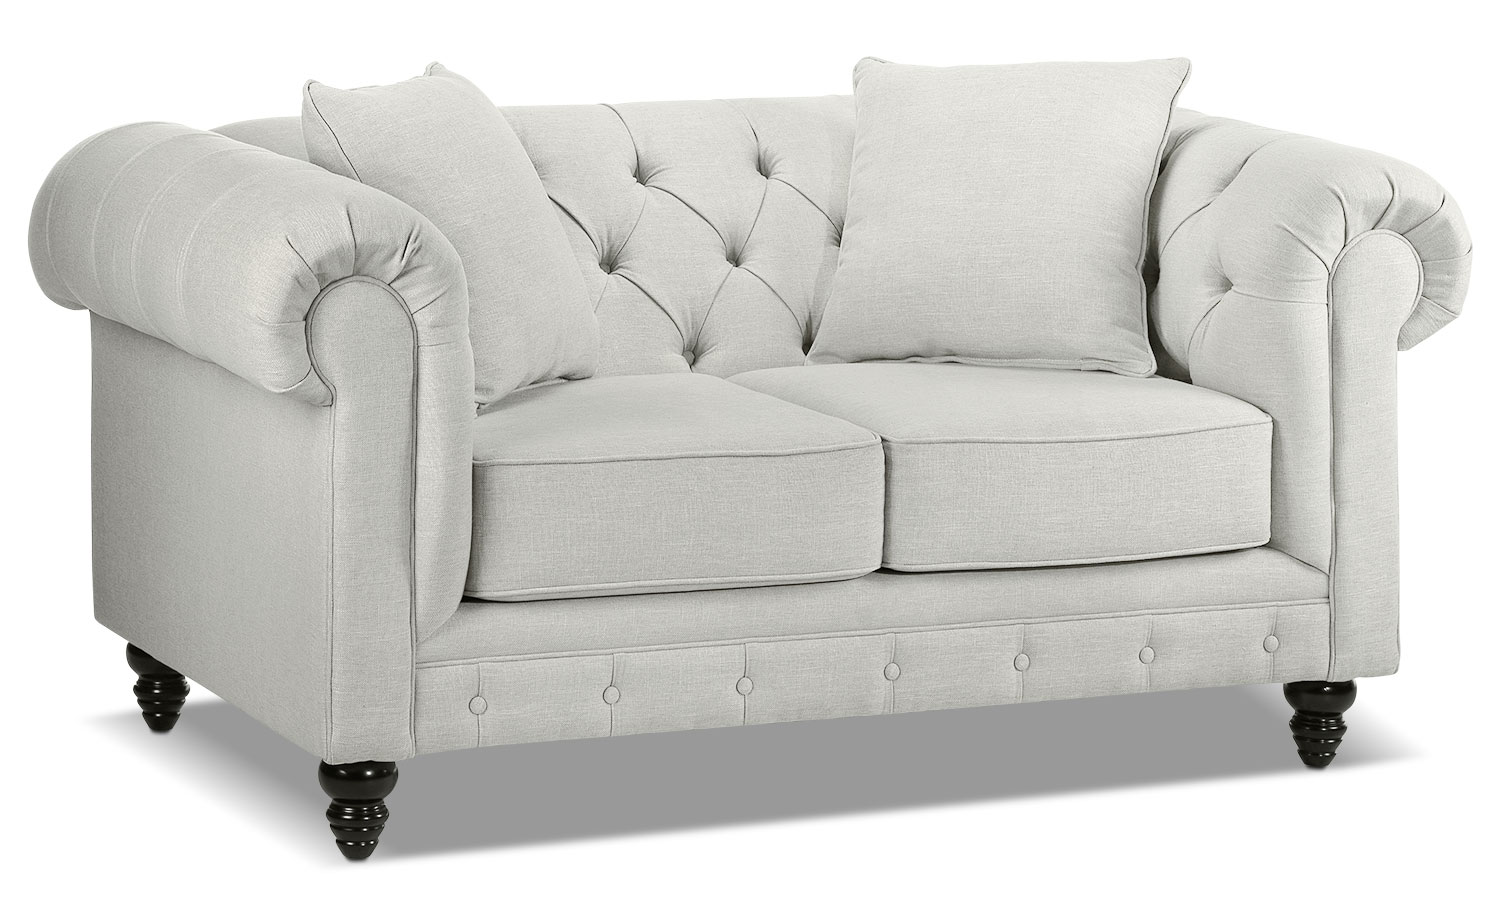 Living Room Furniture - Nubia Loveseat - Platinum